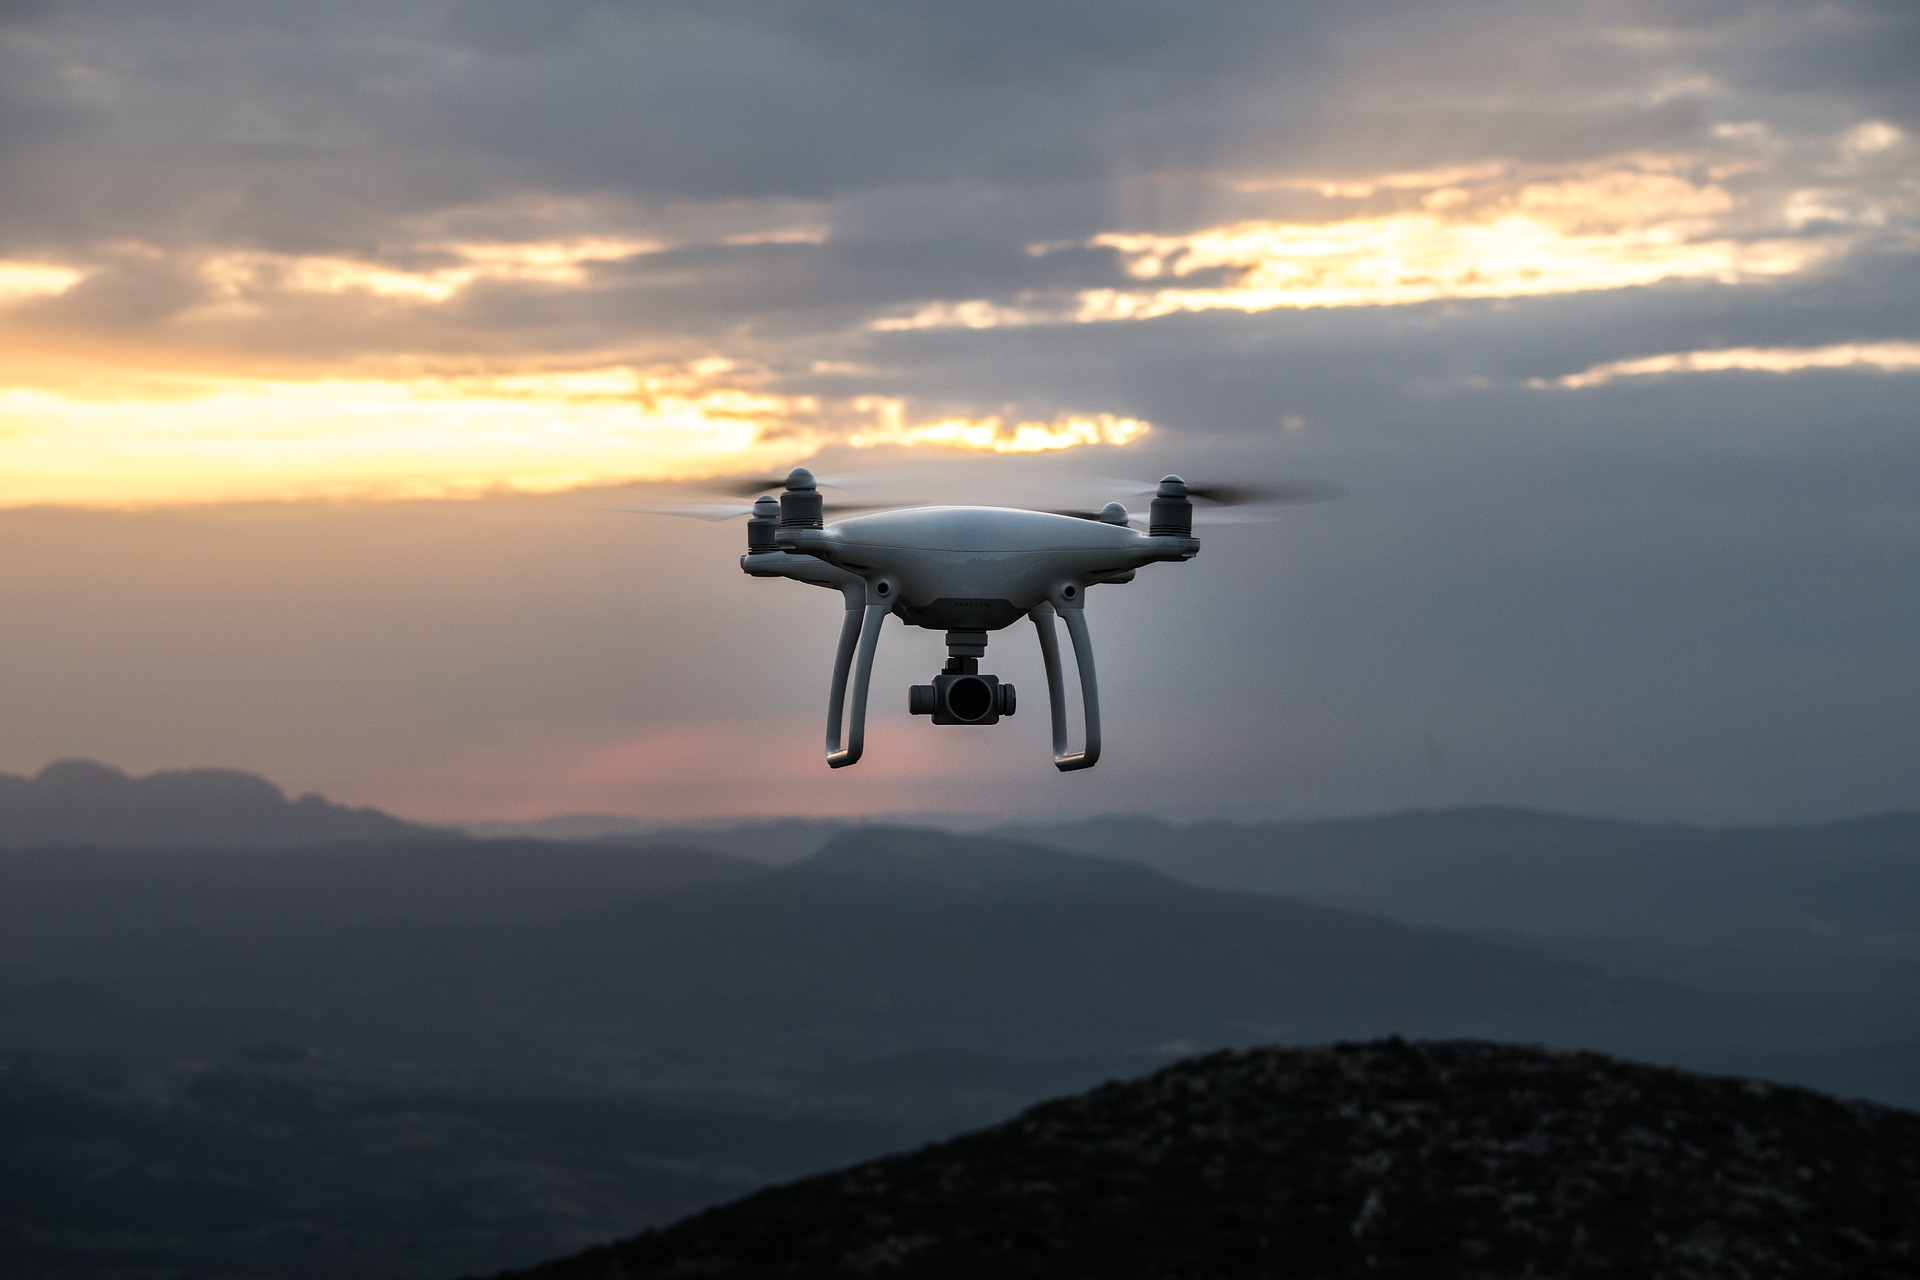 drone laws in Arizona - drone in flight against the sky